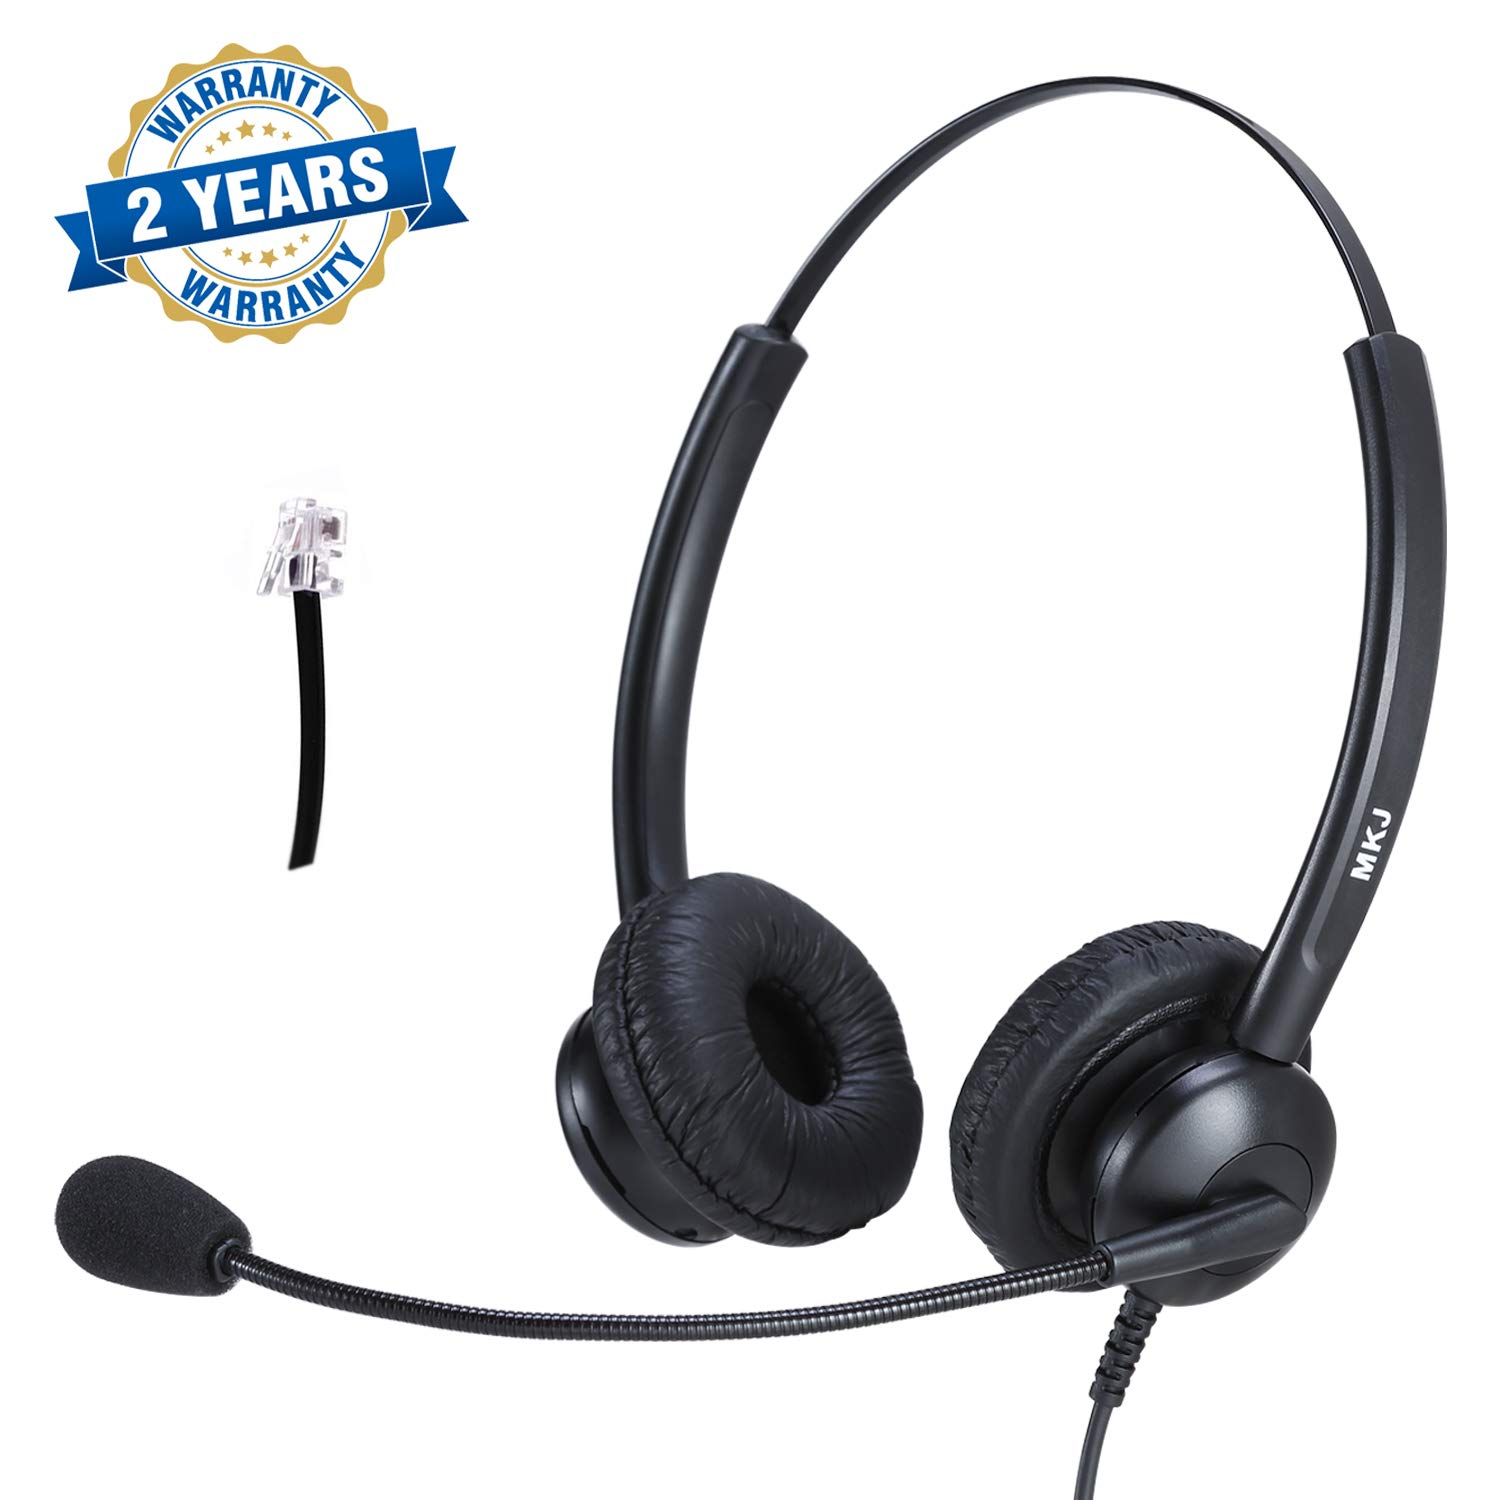 Call Center Binaural Headset RJ9 Corded Headphone with Noise Cancelling Microphone for Desk Phone AVAYA Aastra AudioCodes Atcom Fanvil Mitel Nortel